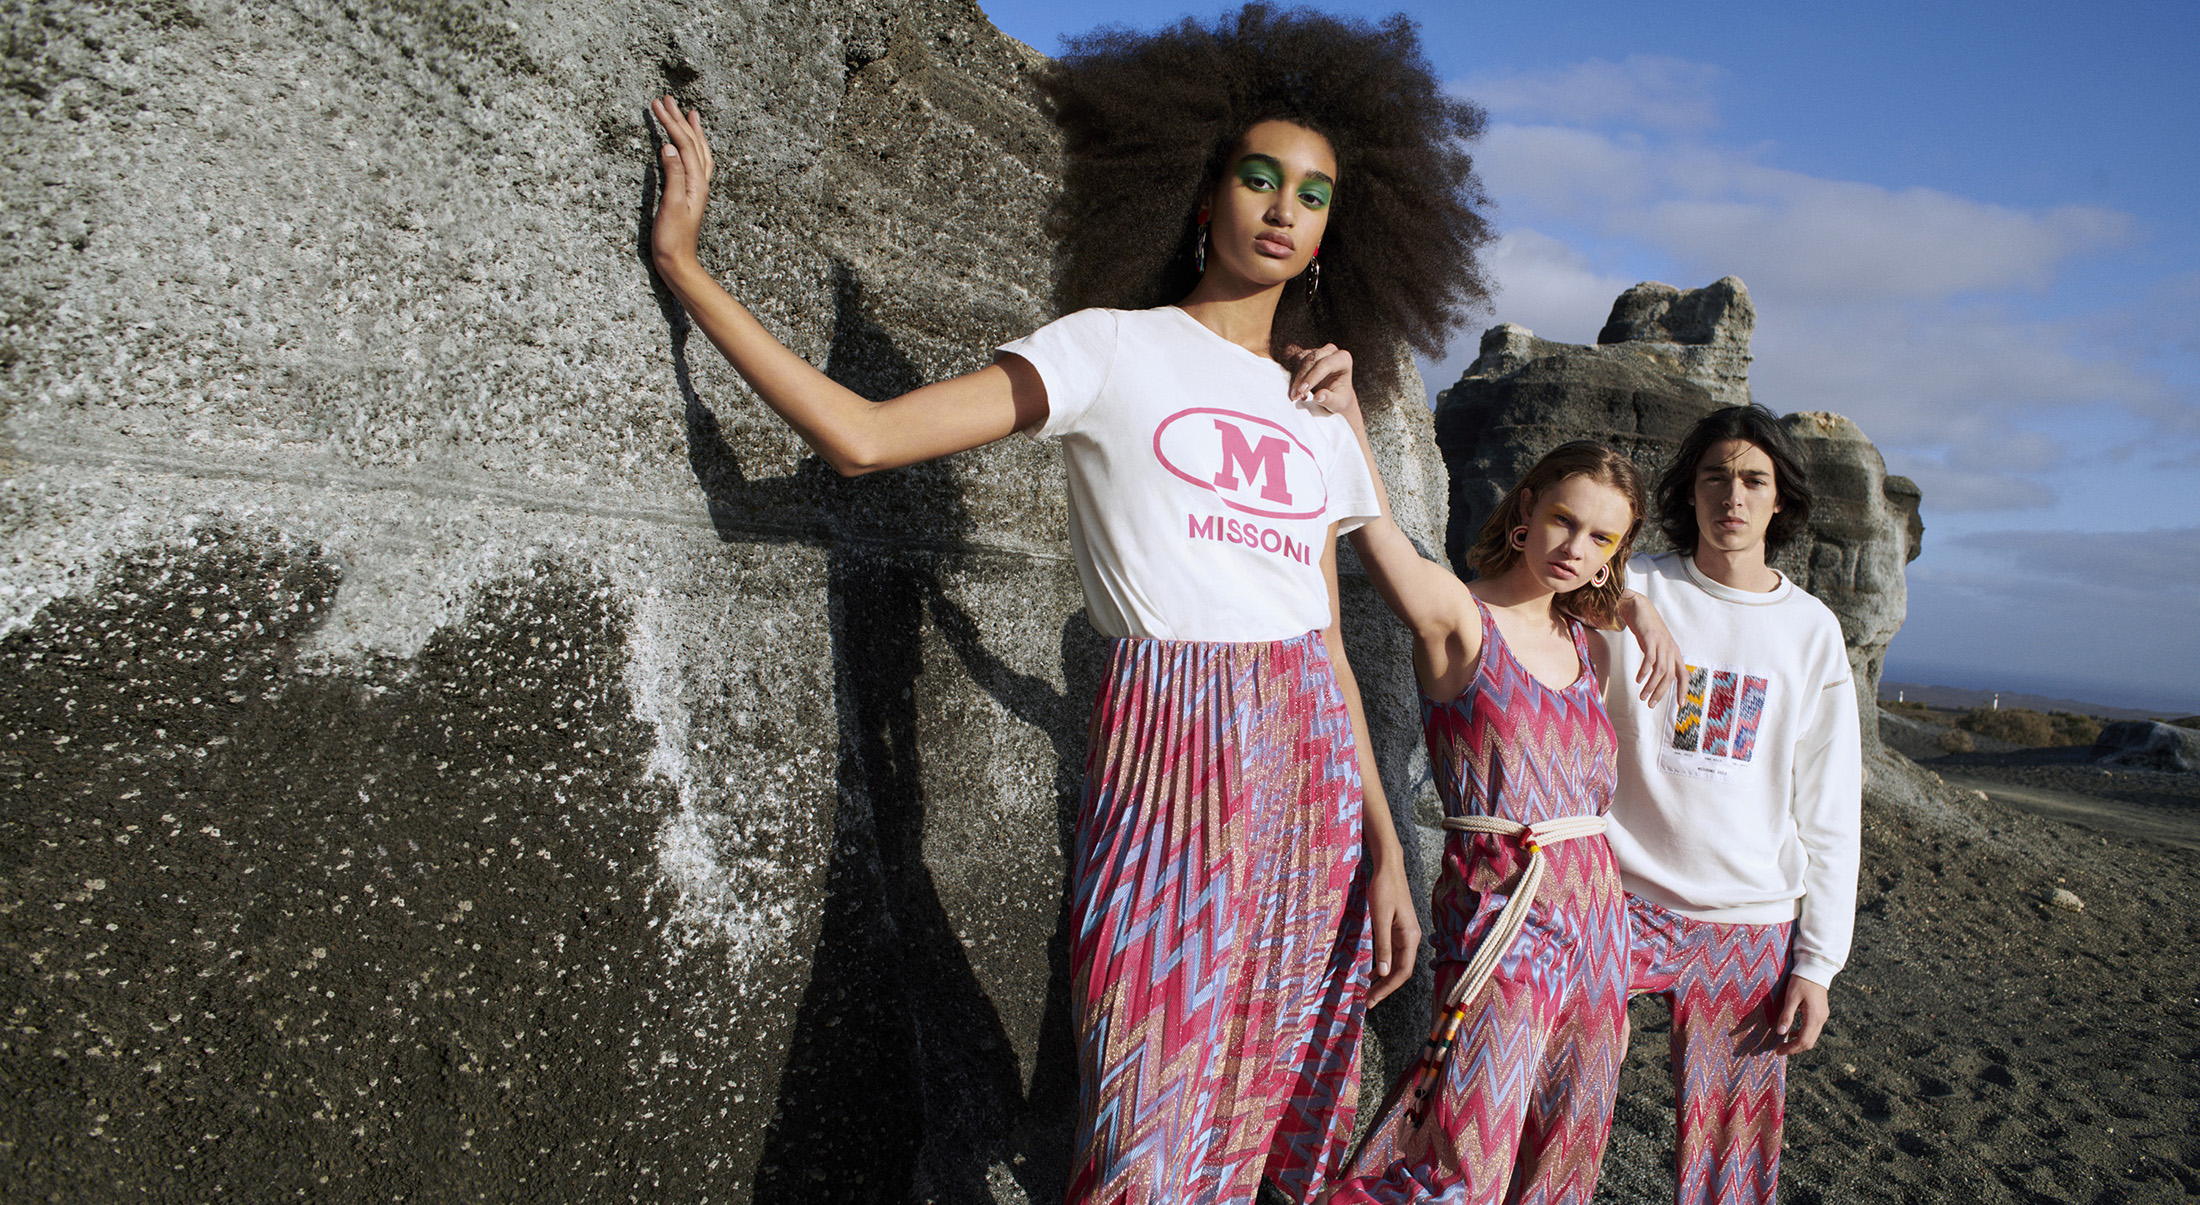 M Missoni Teams with Yoox for Summer Capsule